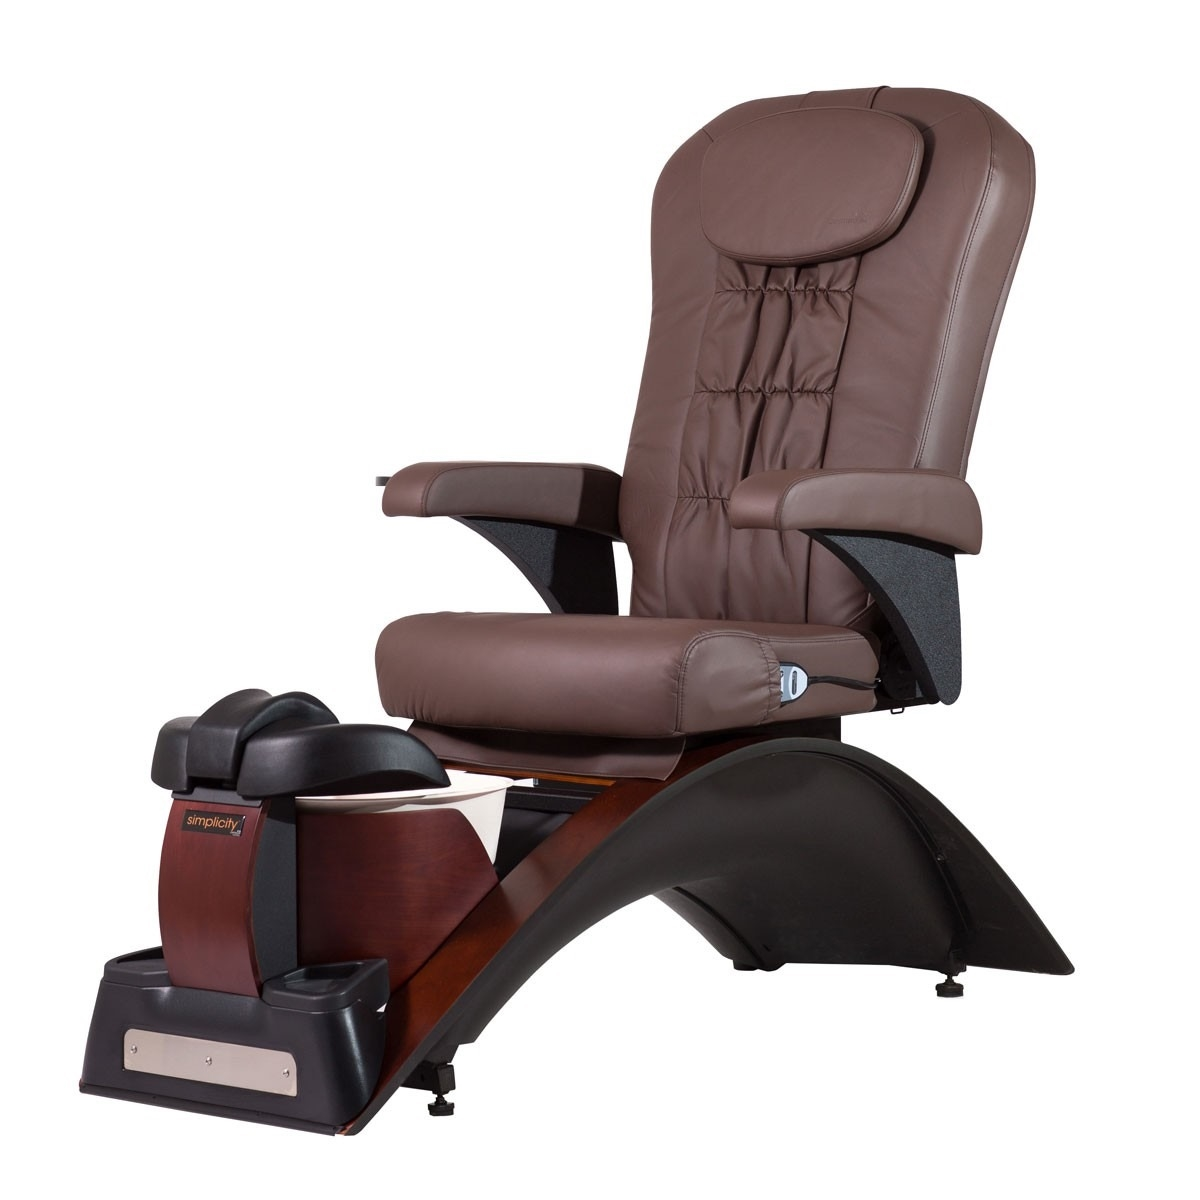 qk alpina htm comfortsoul email p cs larger pedicure view by photo chair